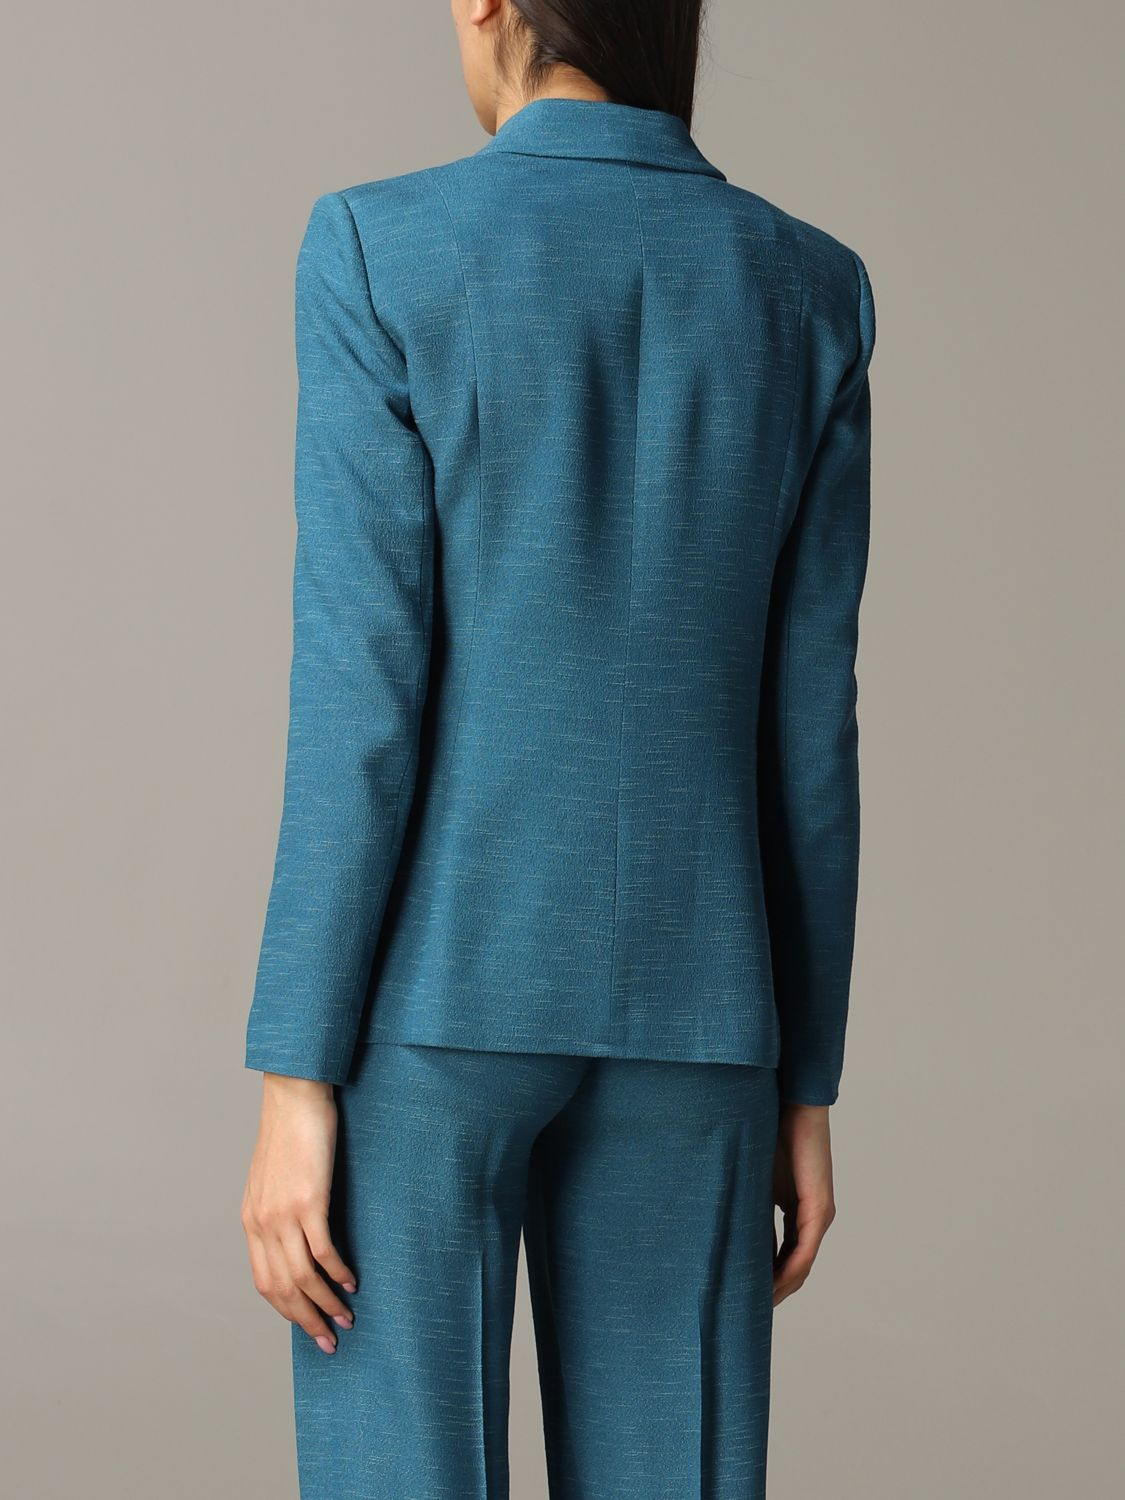 Patrizia Pepe double-breasted jacket teal 3